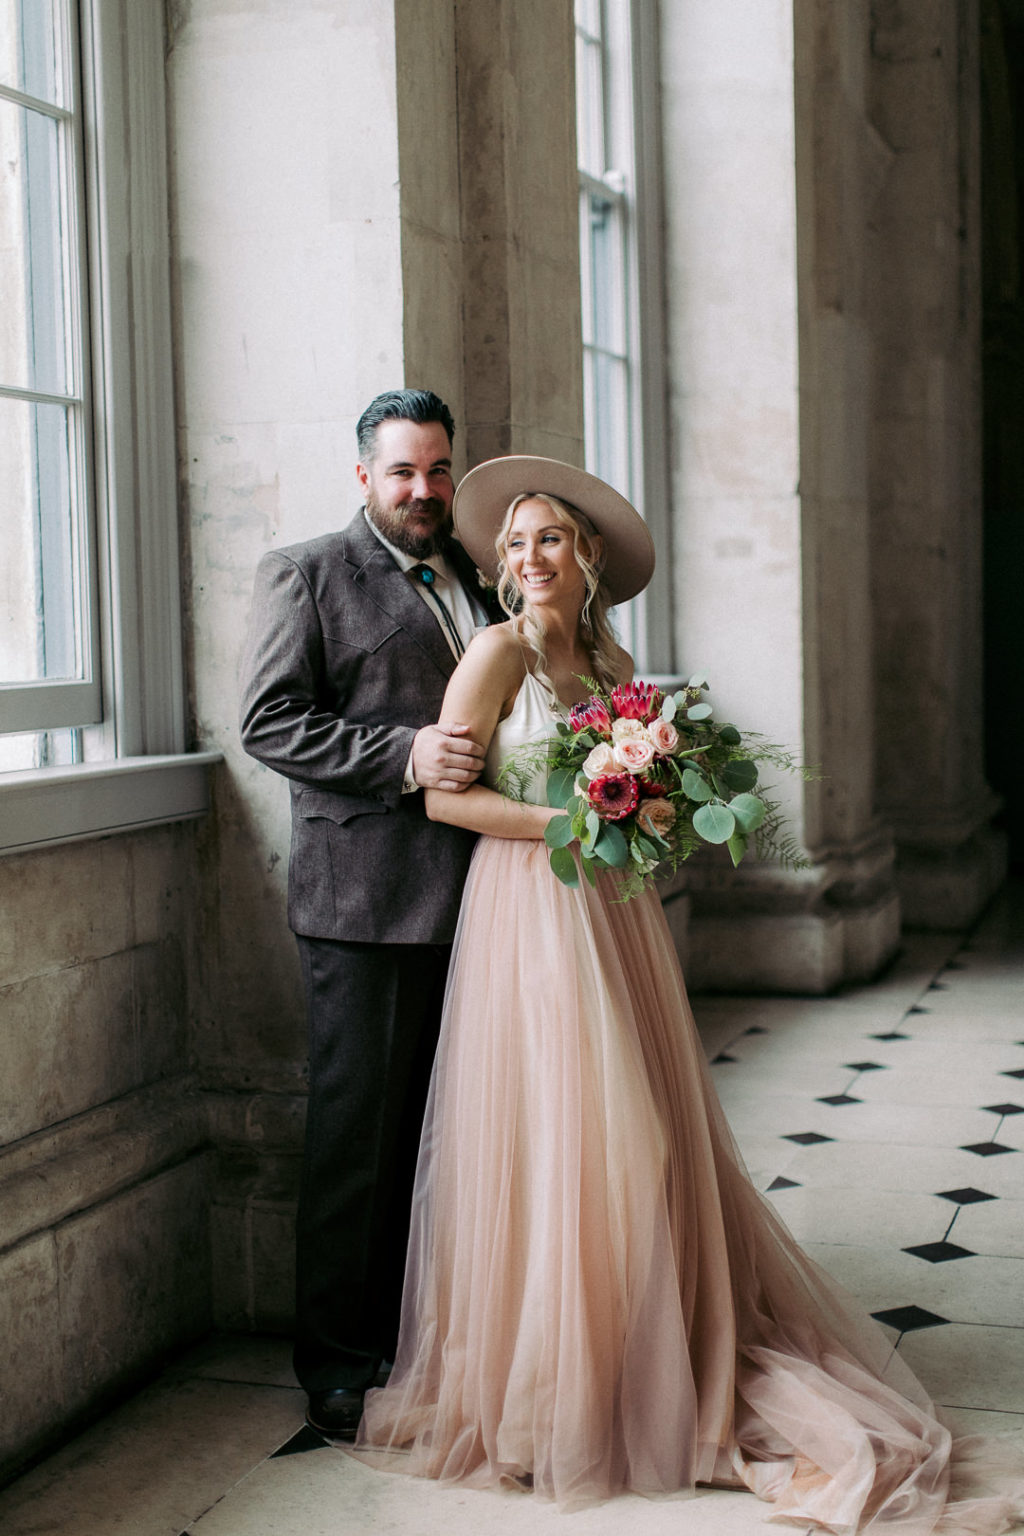 This US couple went for a cool Dublin City Hall wedding